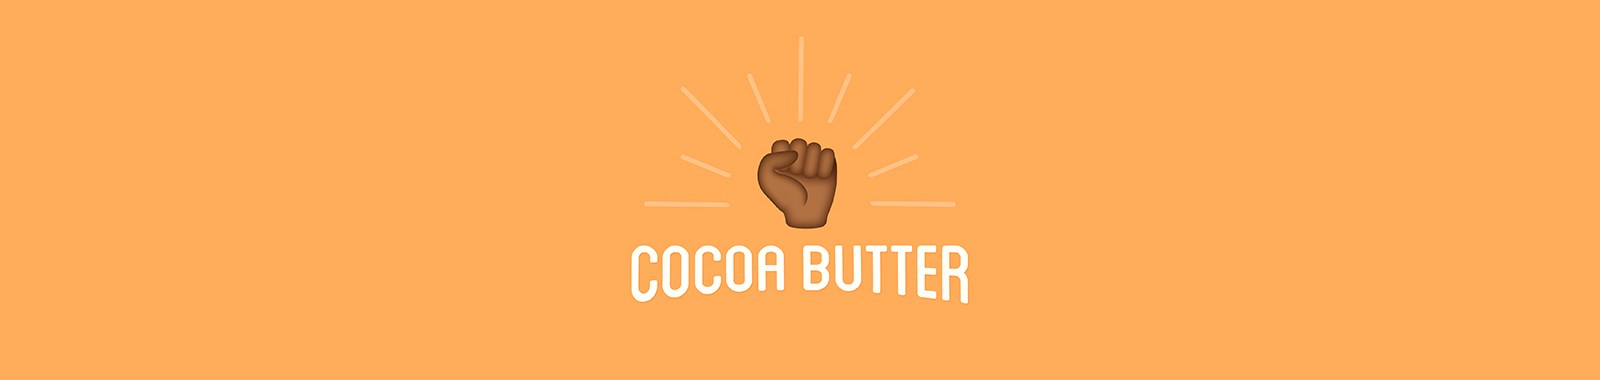 cocoa_butter-eye